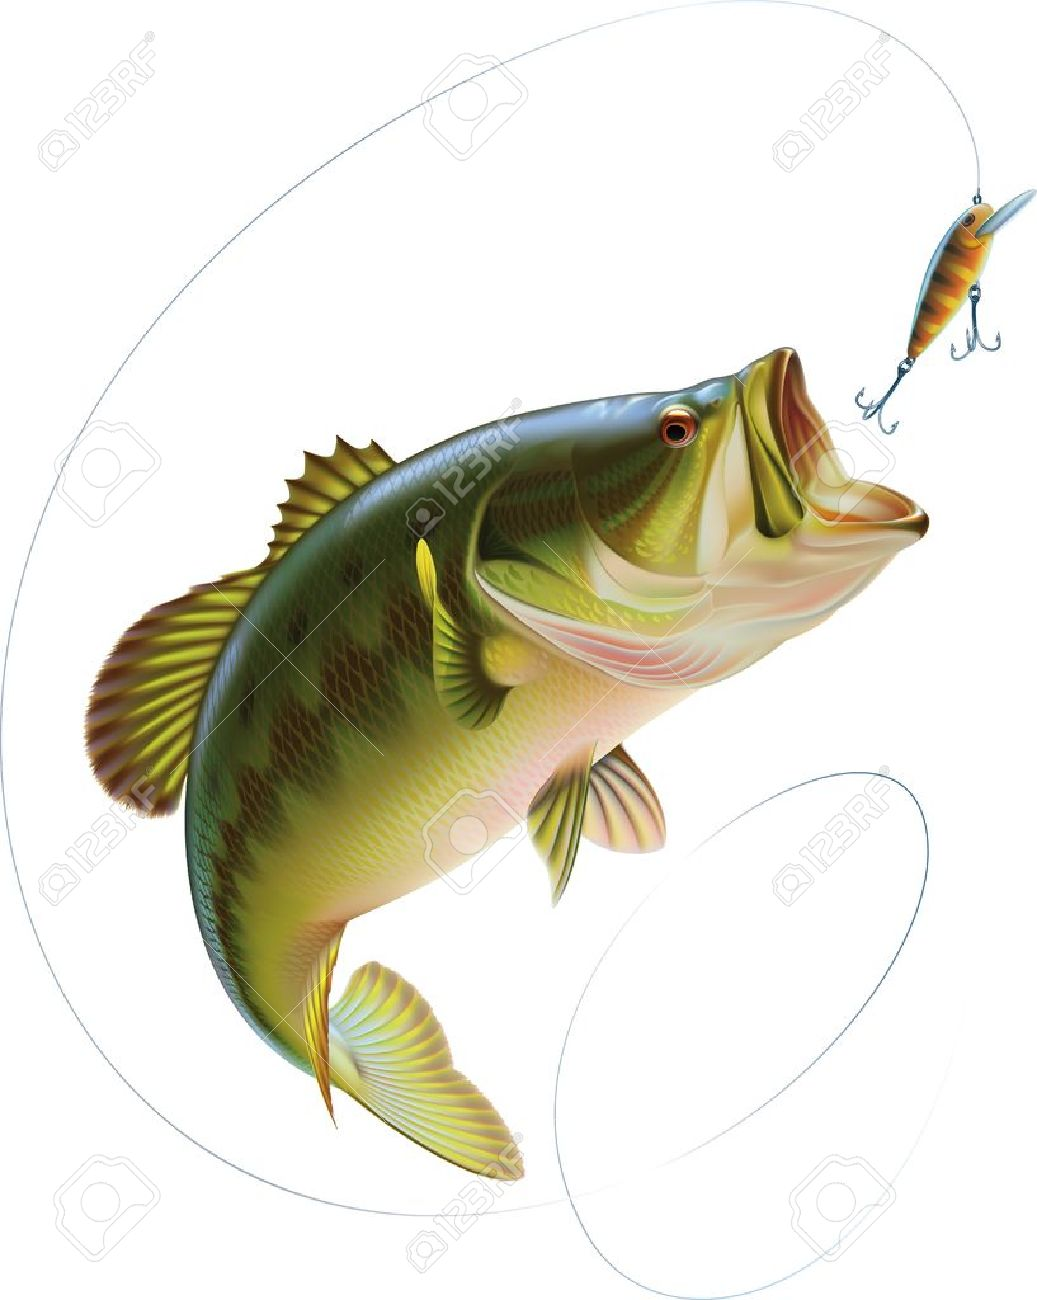 Largemouth bass is catching a bite and jumping in water spray Layered vector illustration - 17805064